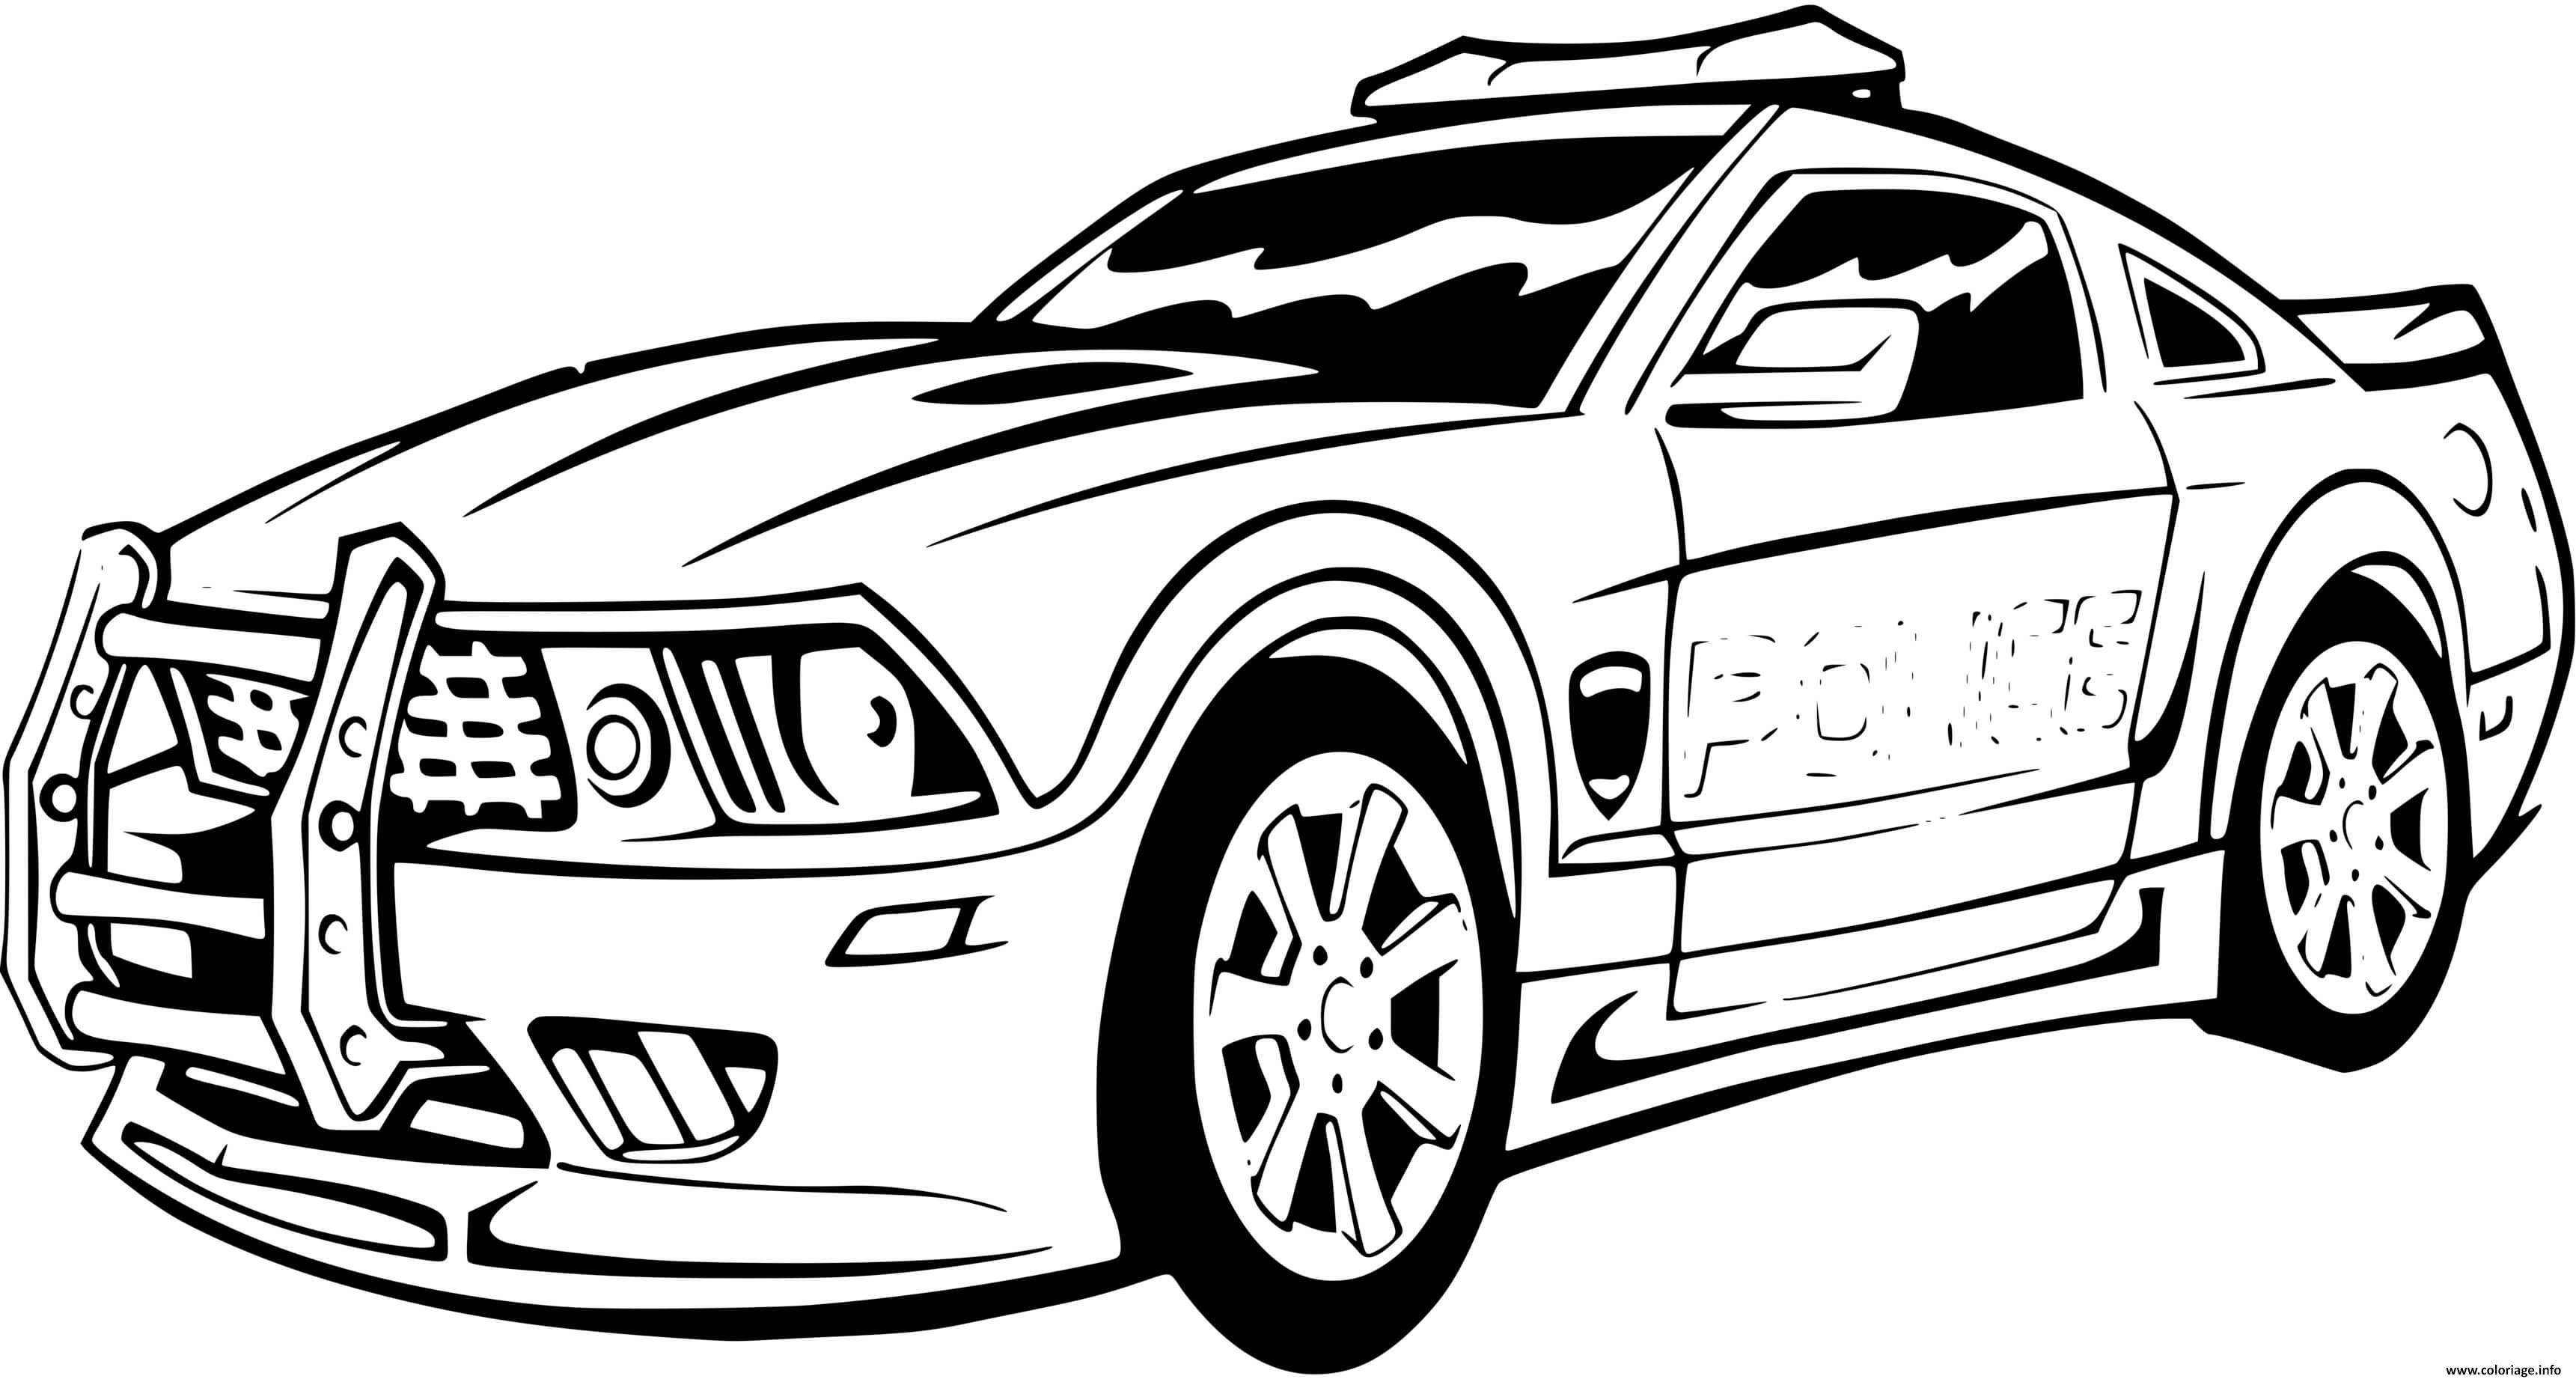 Coloriage Voiture De Police Sport Mustang Ford Jecolorie Com